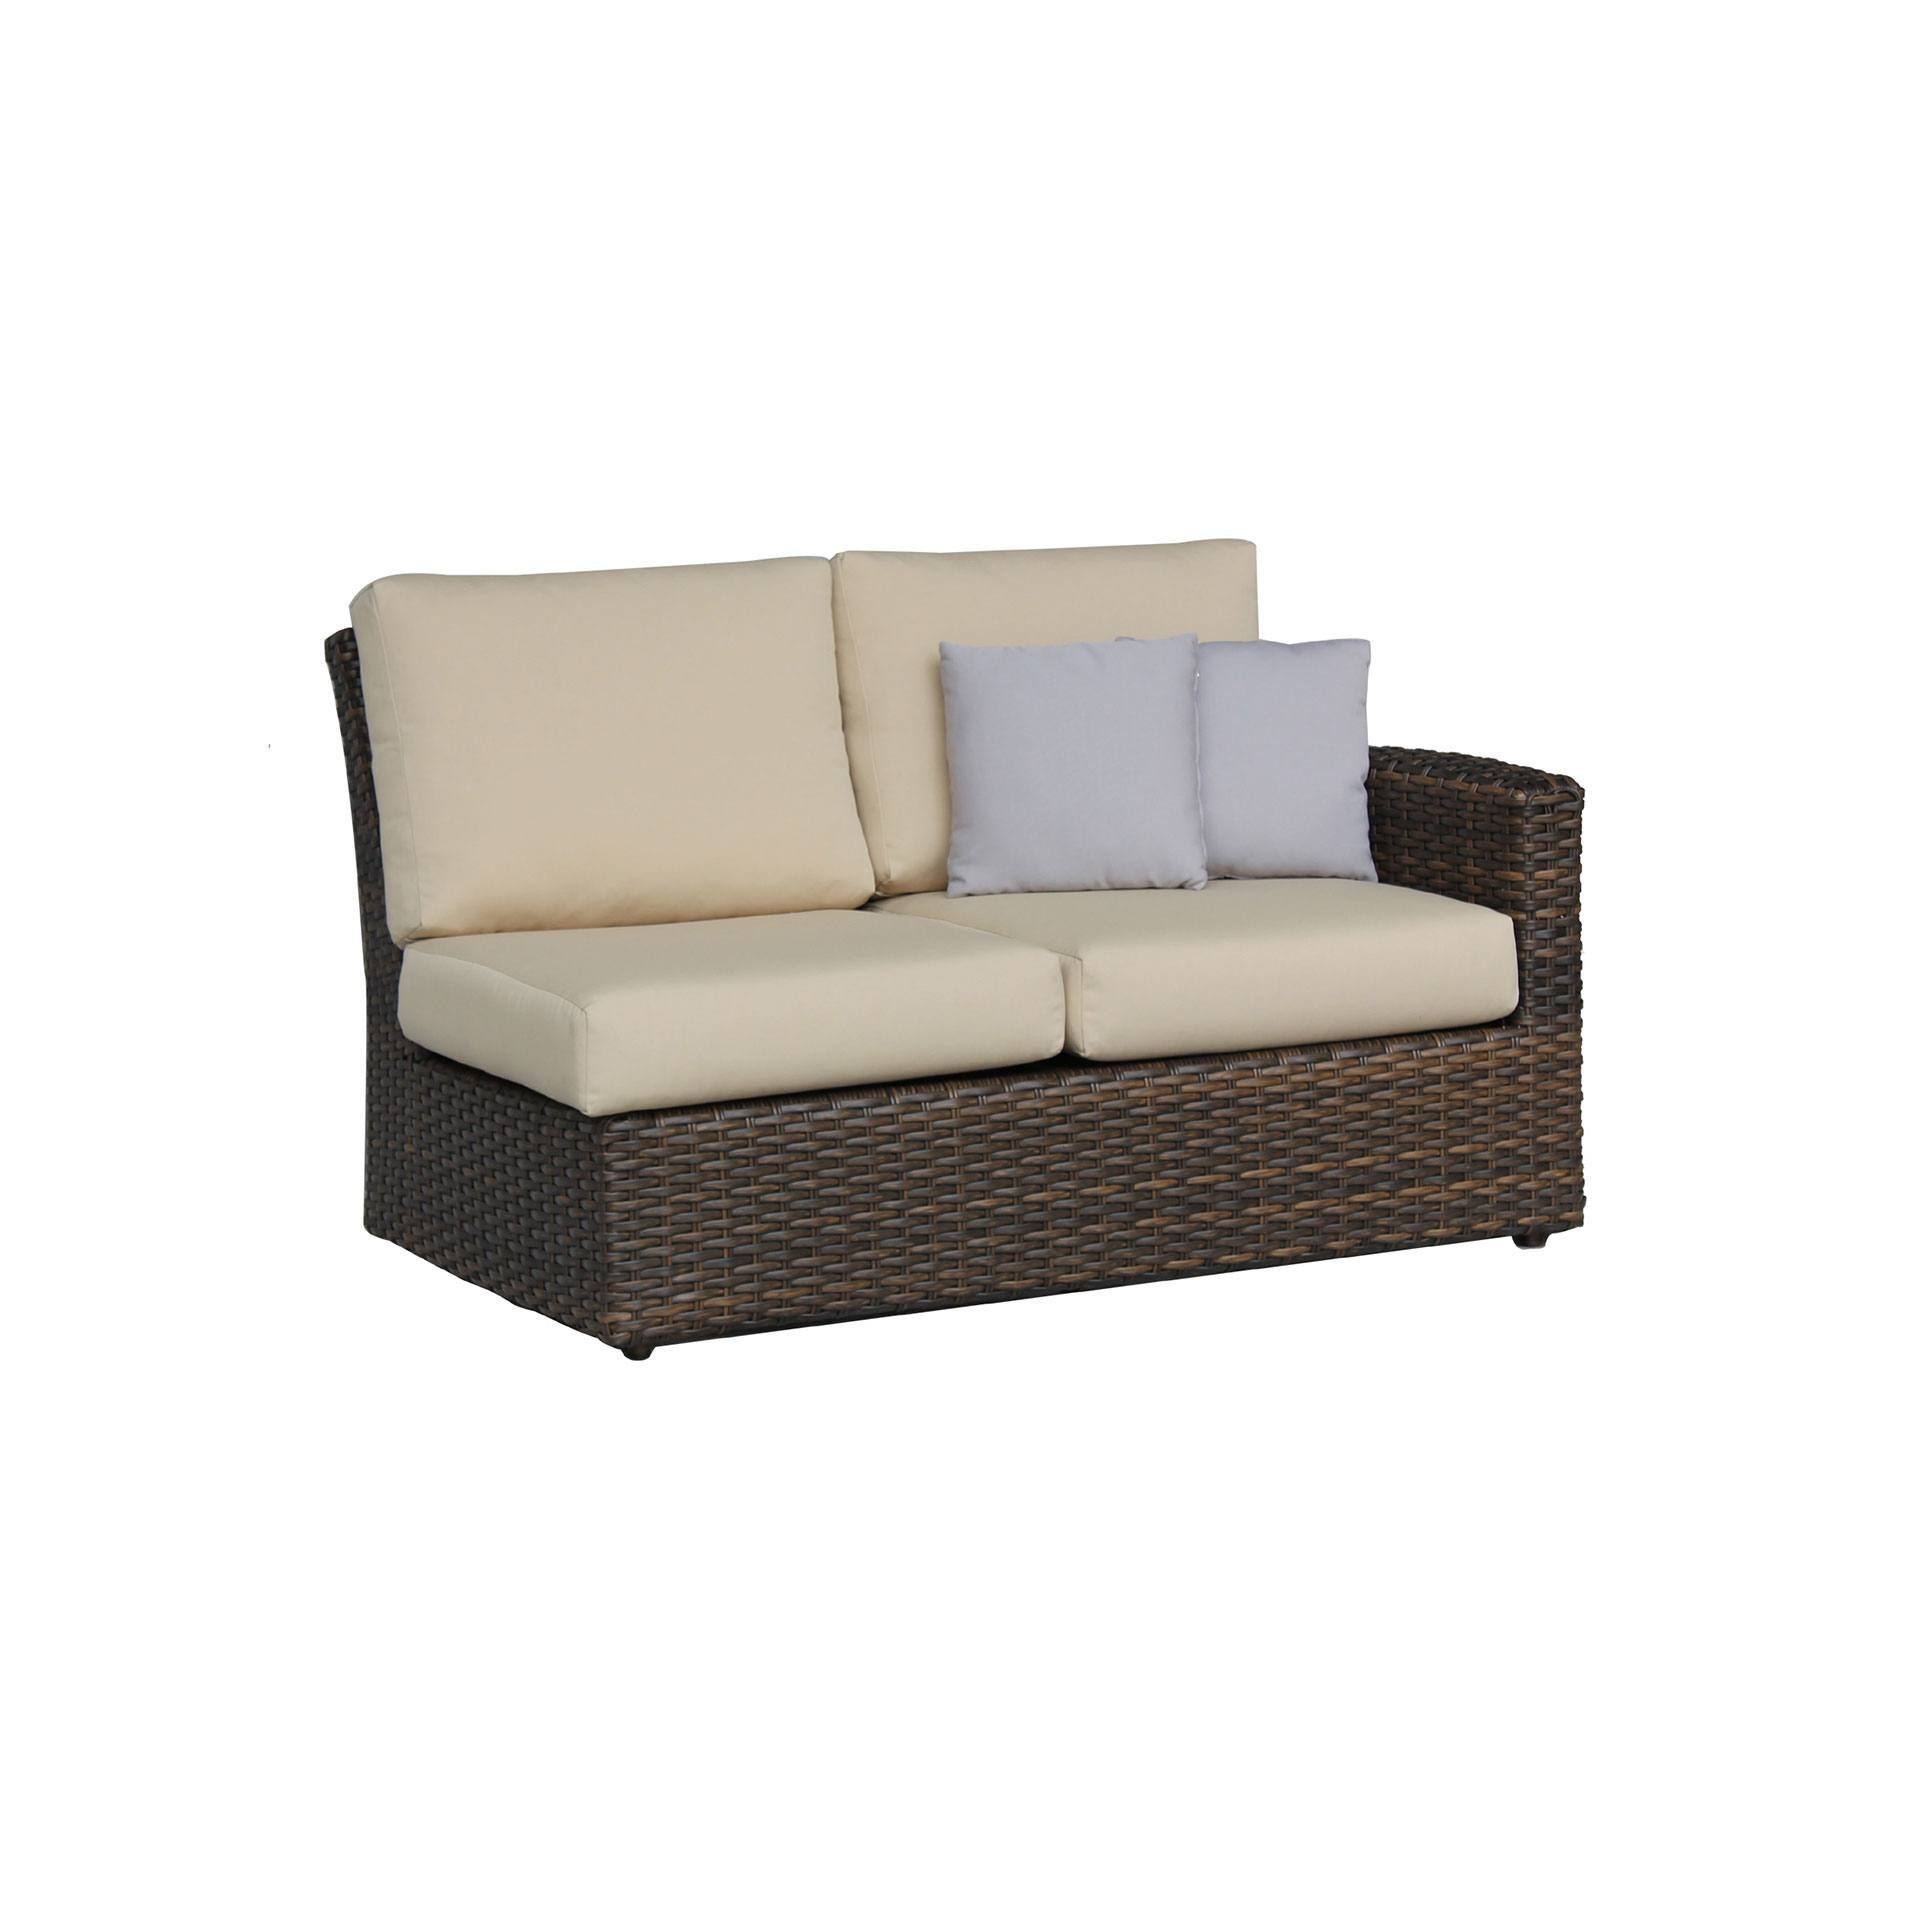 Jackknife Sofa With Seat Belts 28 Ipe Deck Tiles Canada